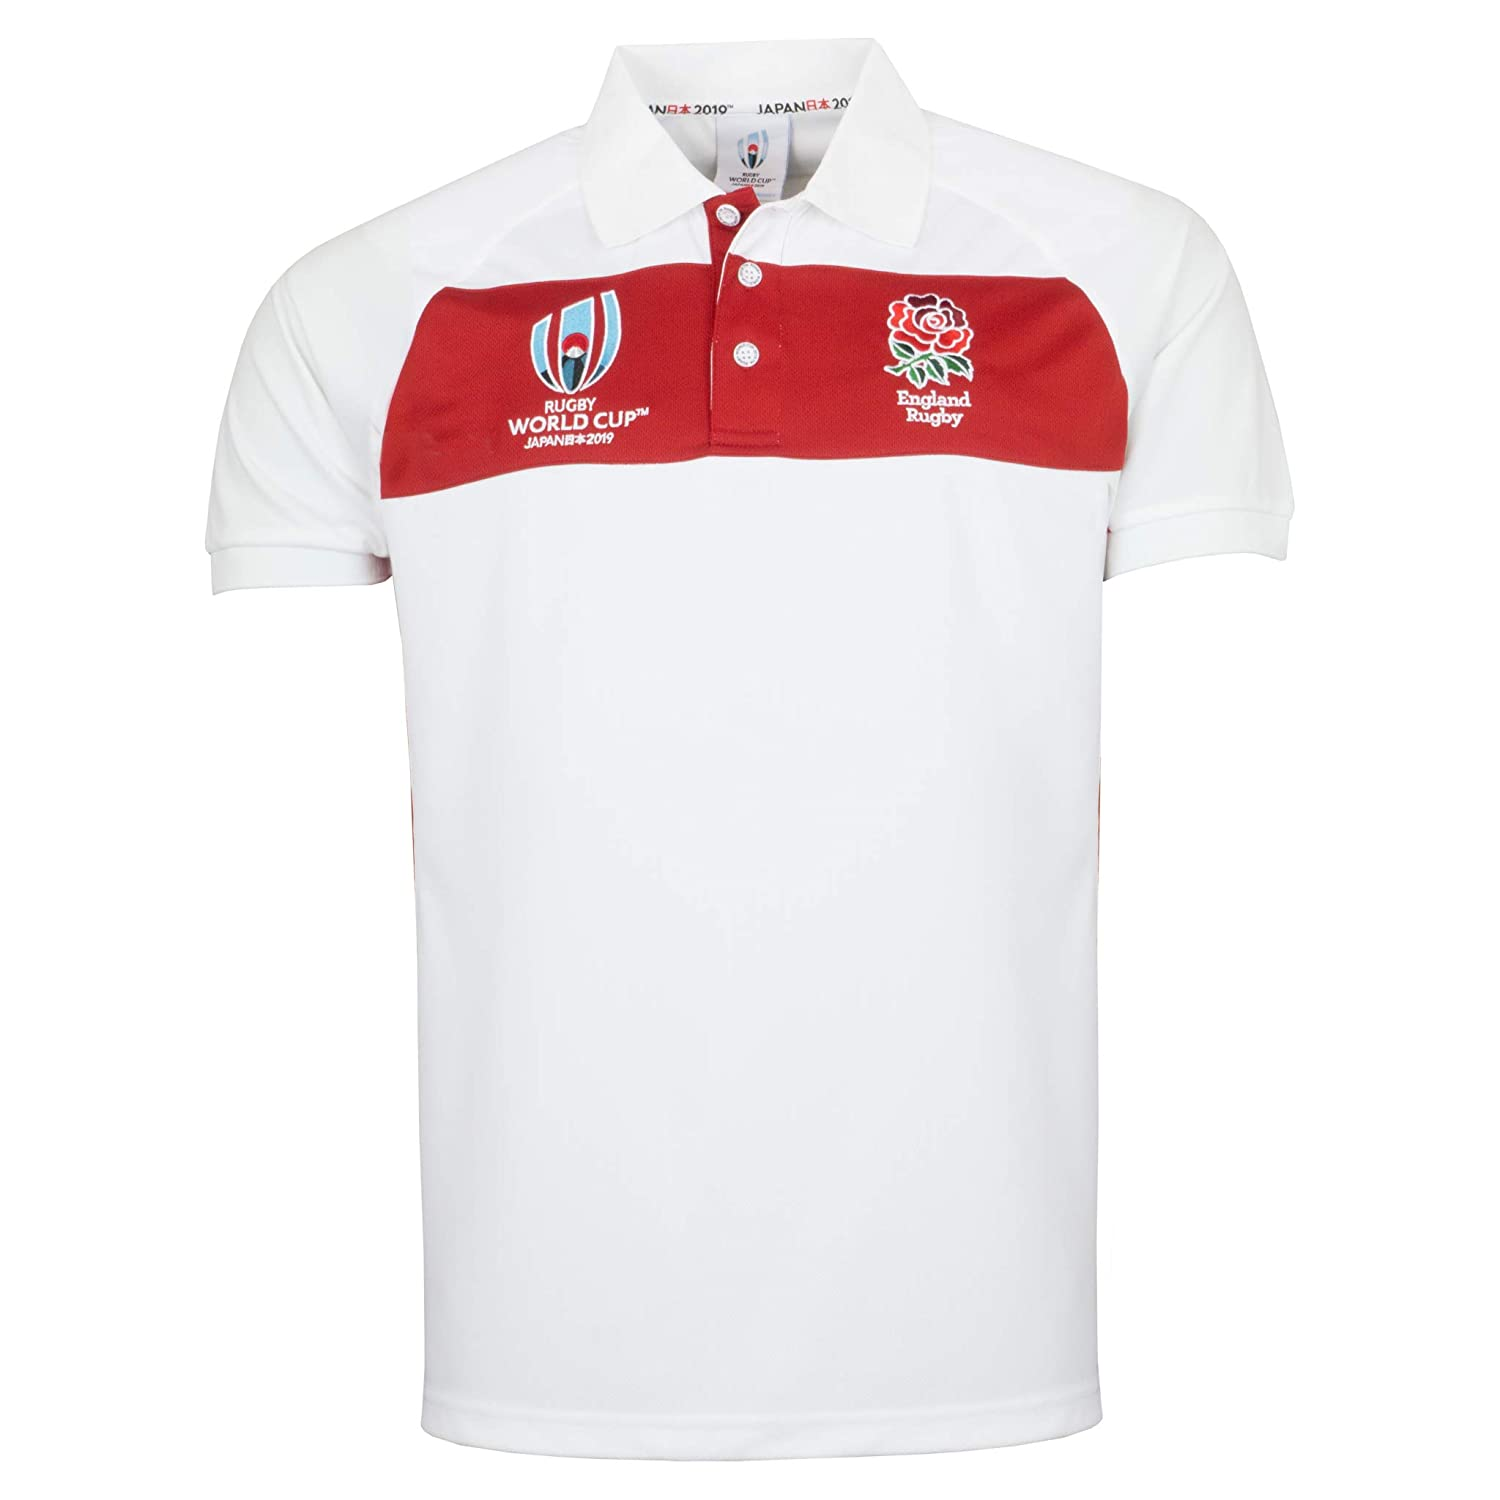 England Rugby World Cup Japan 2019 Country Collection T-Shirt